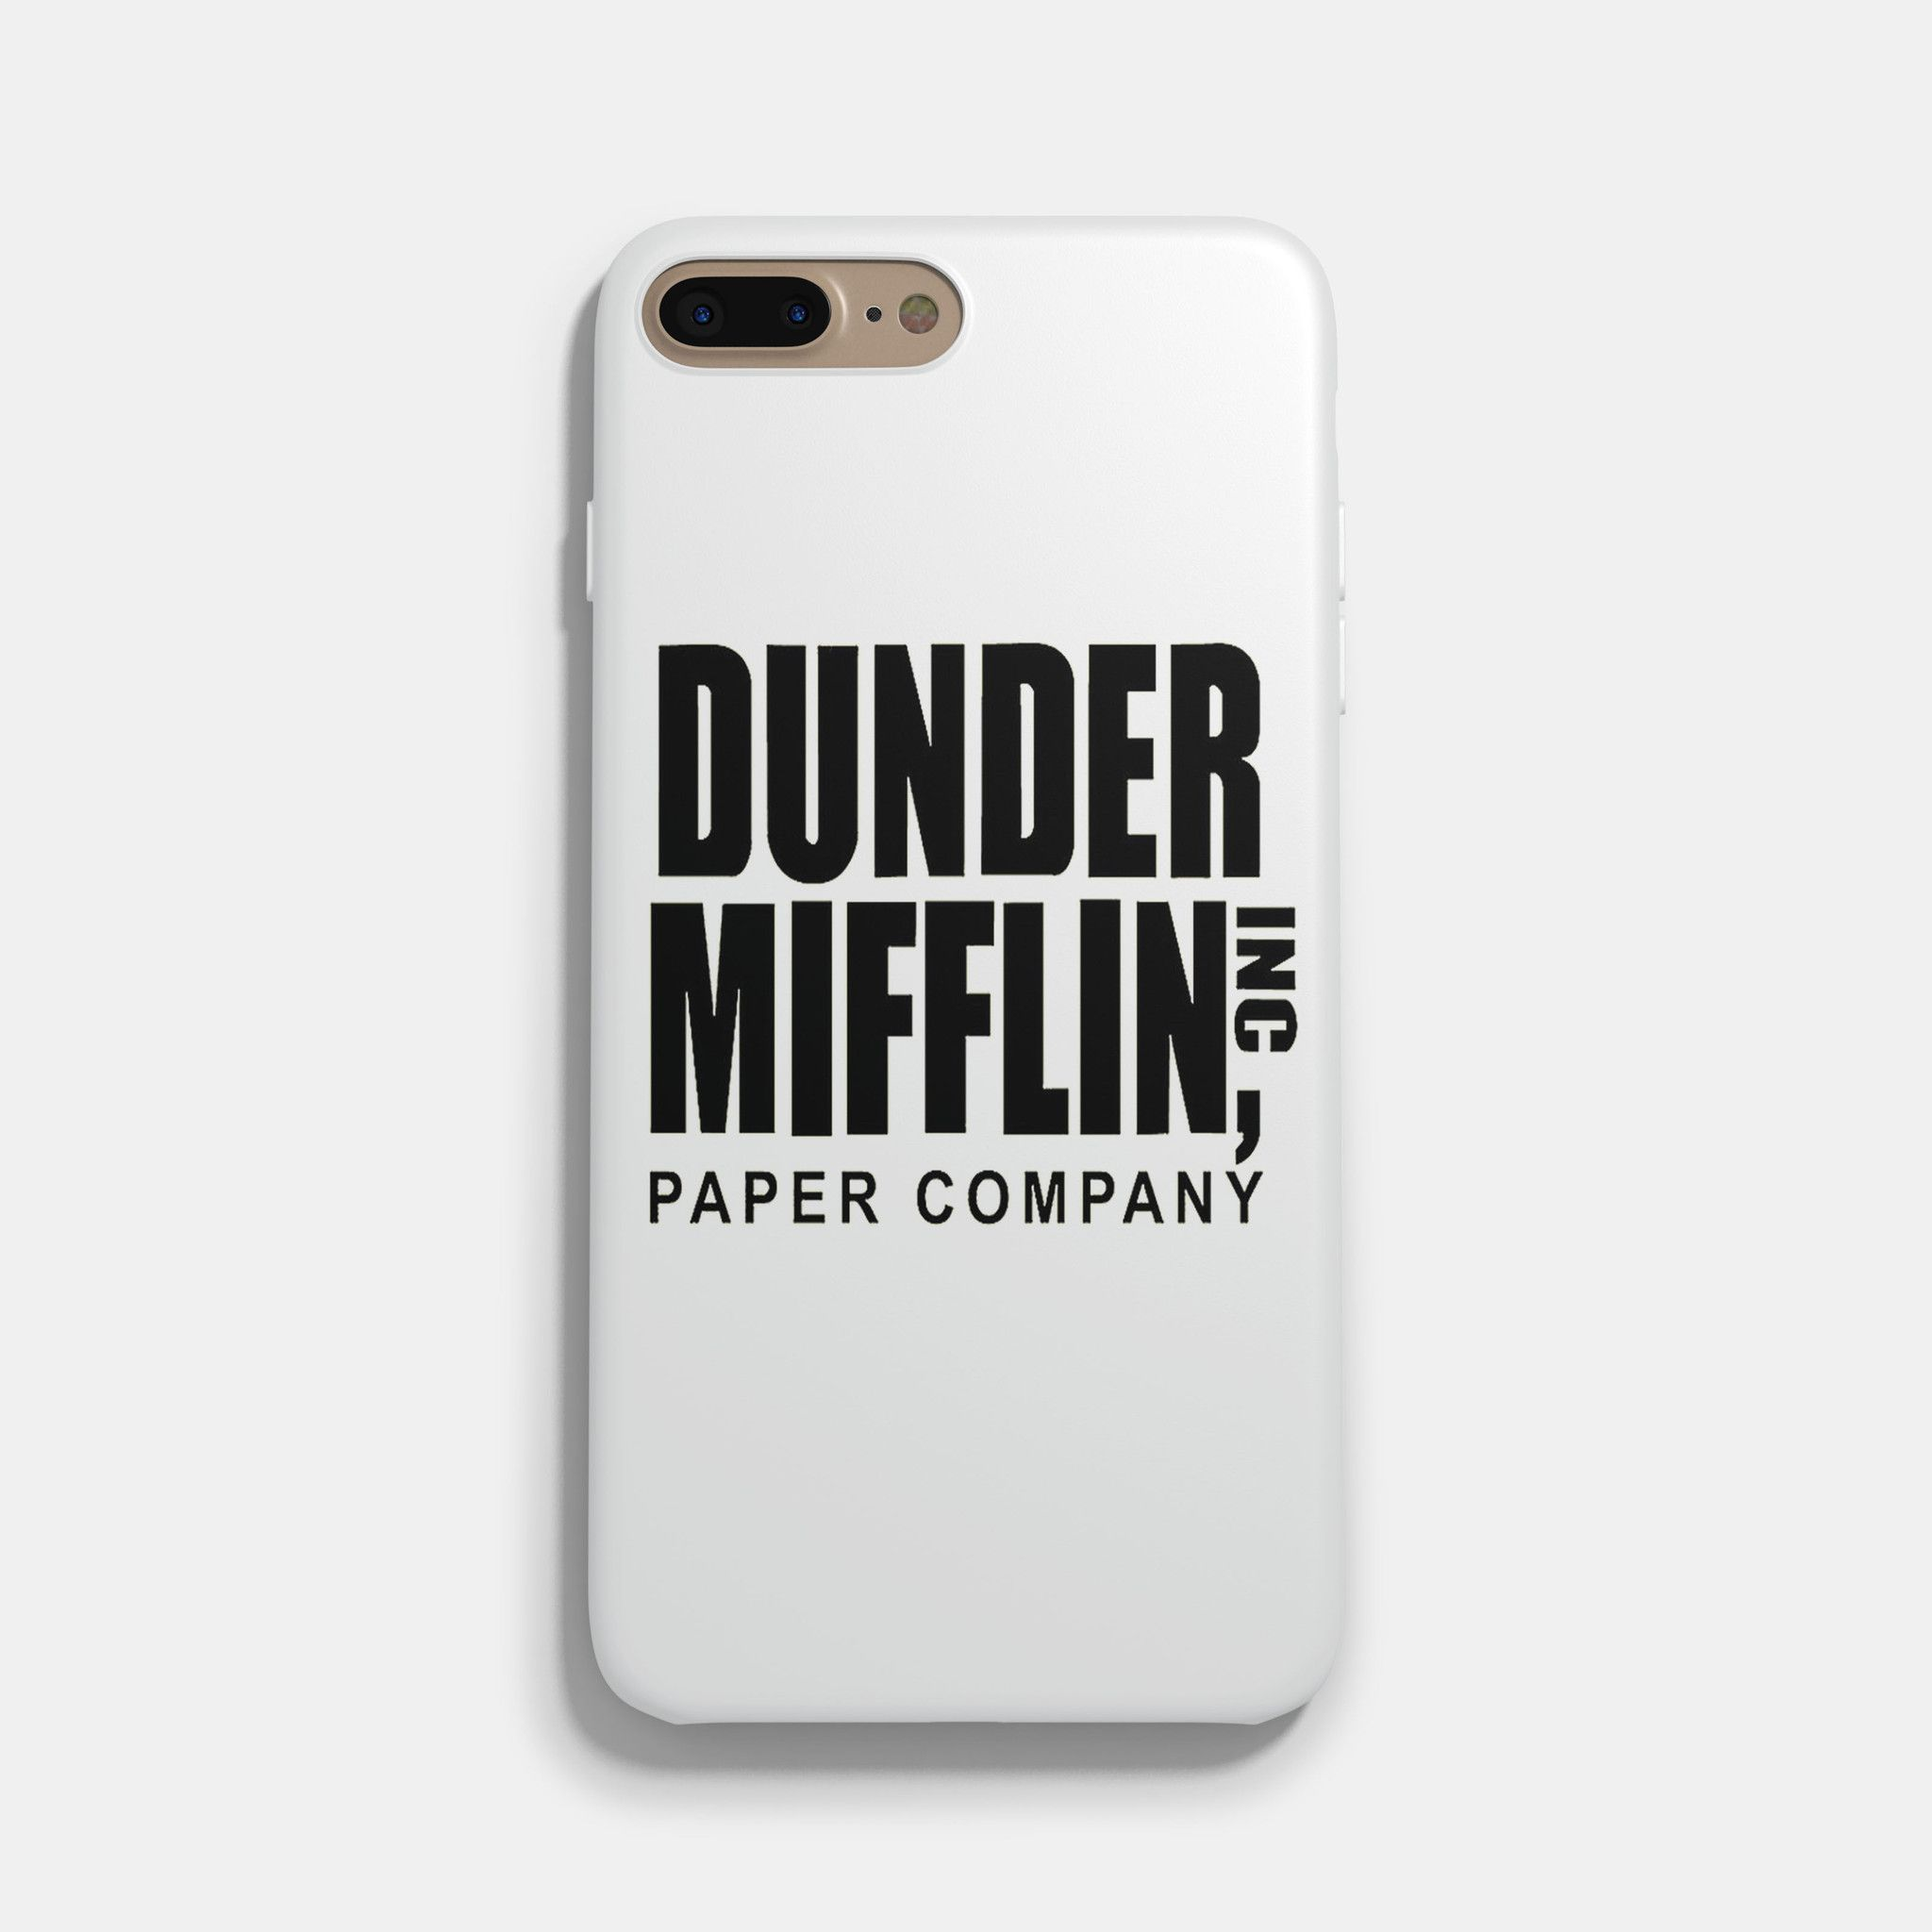 cheaper c7d12 a72d4 Dunder Mifflin the Office iPhone 7 / 7 Plus Case #iphonecase ...